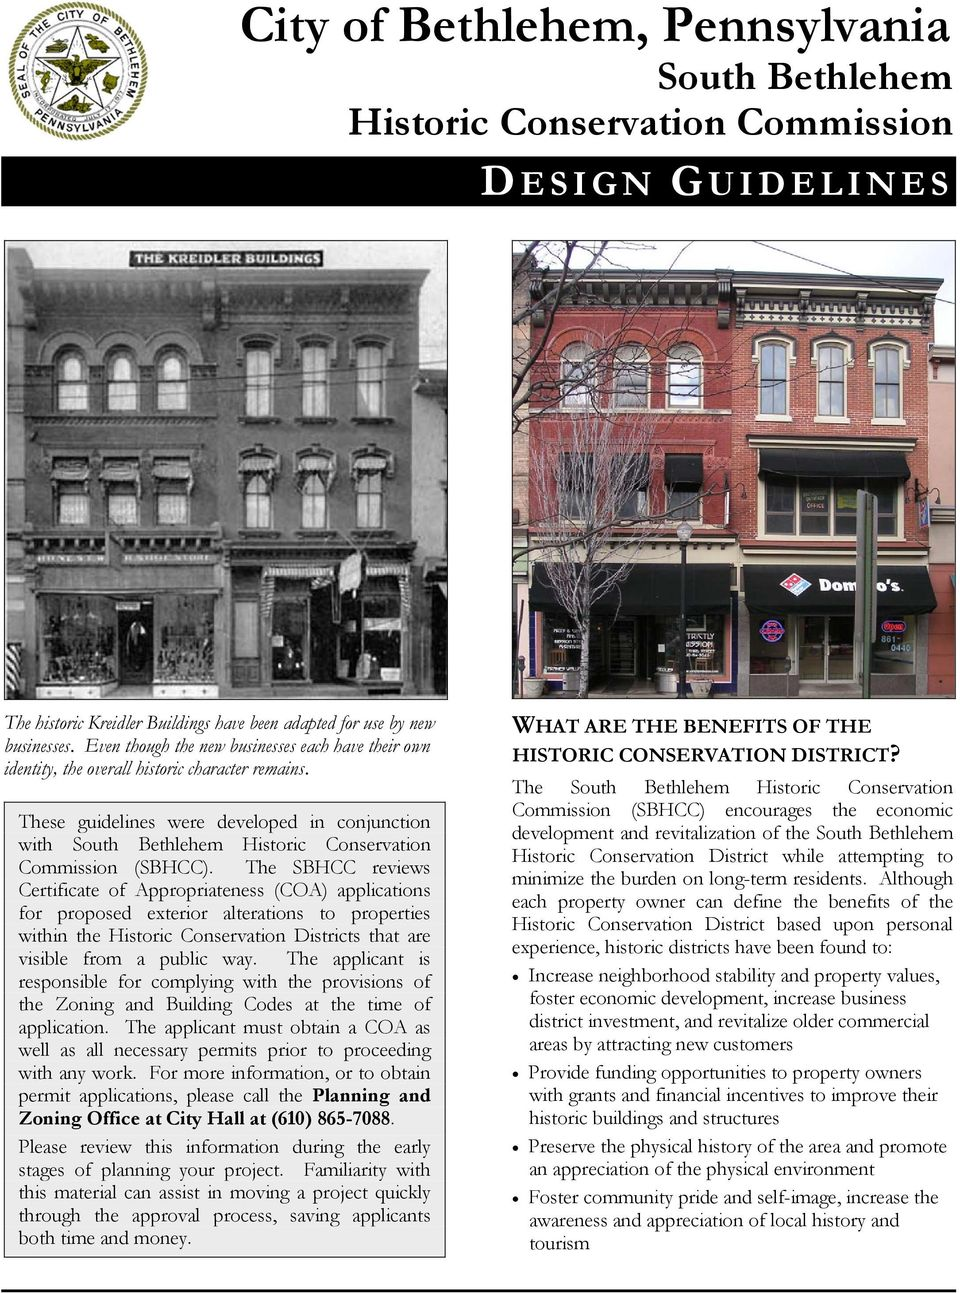 These guidelines were developed in conjunction with South Bethlehem Historic Conservation Commission (SBHCC).